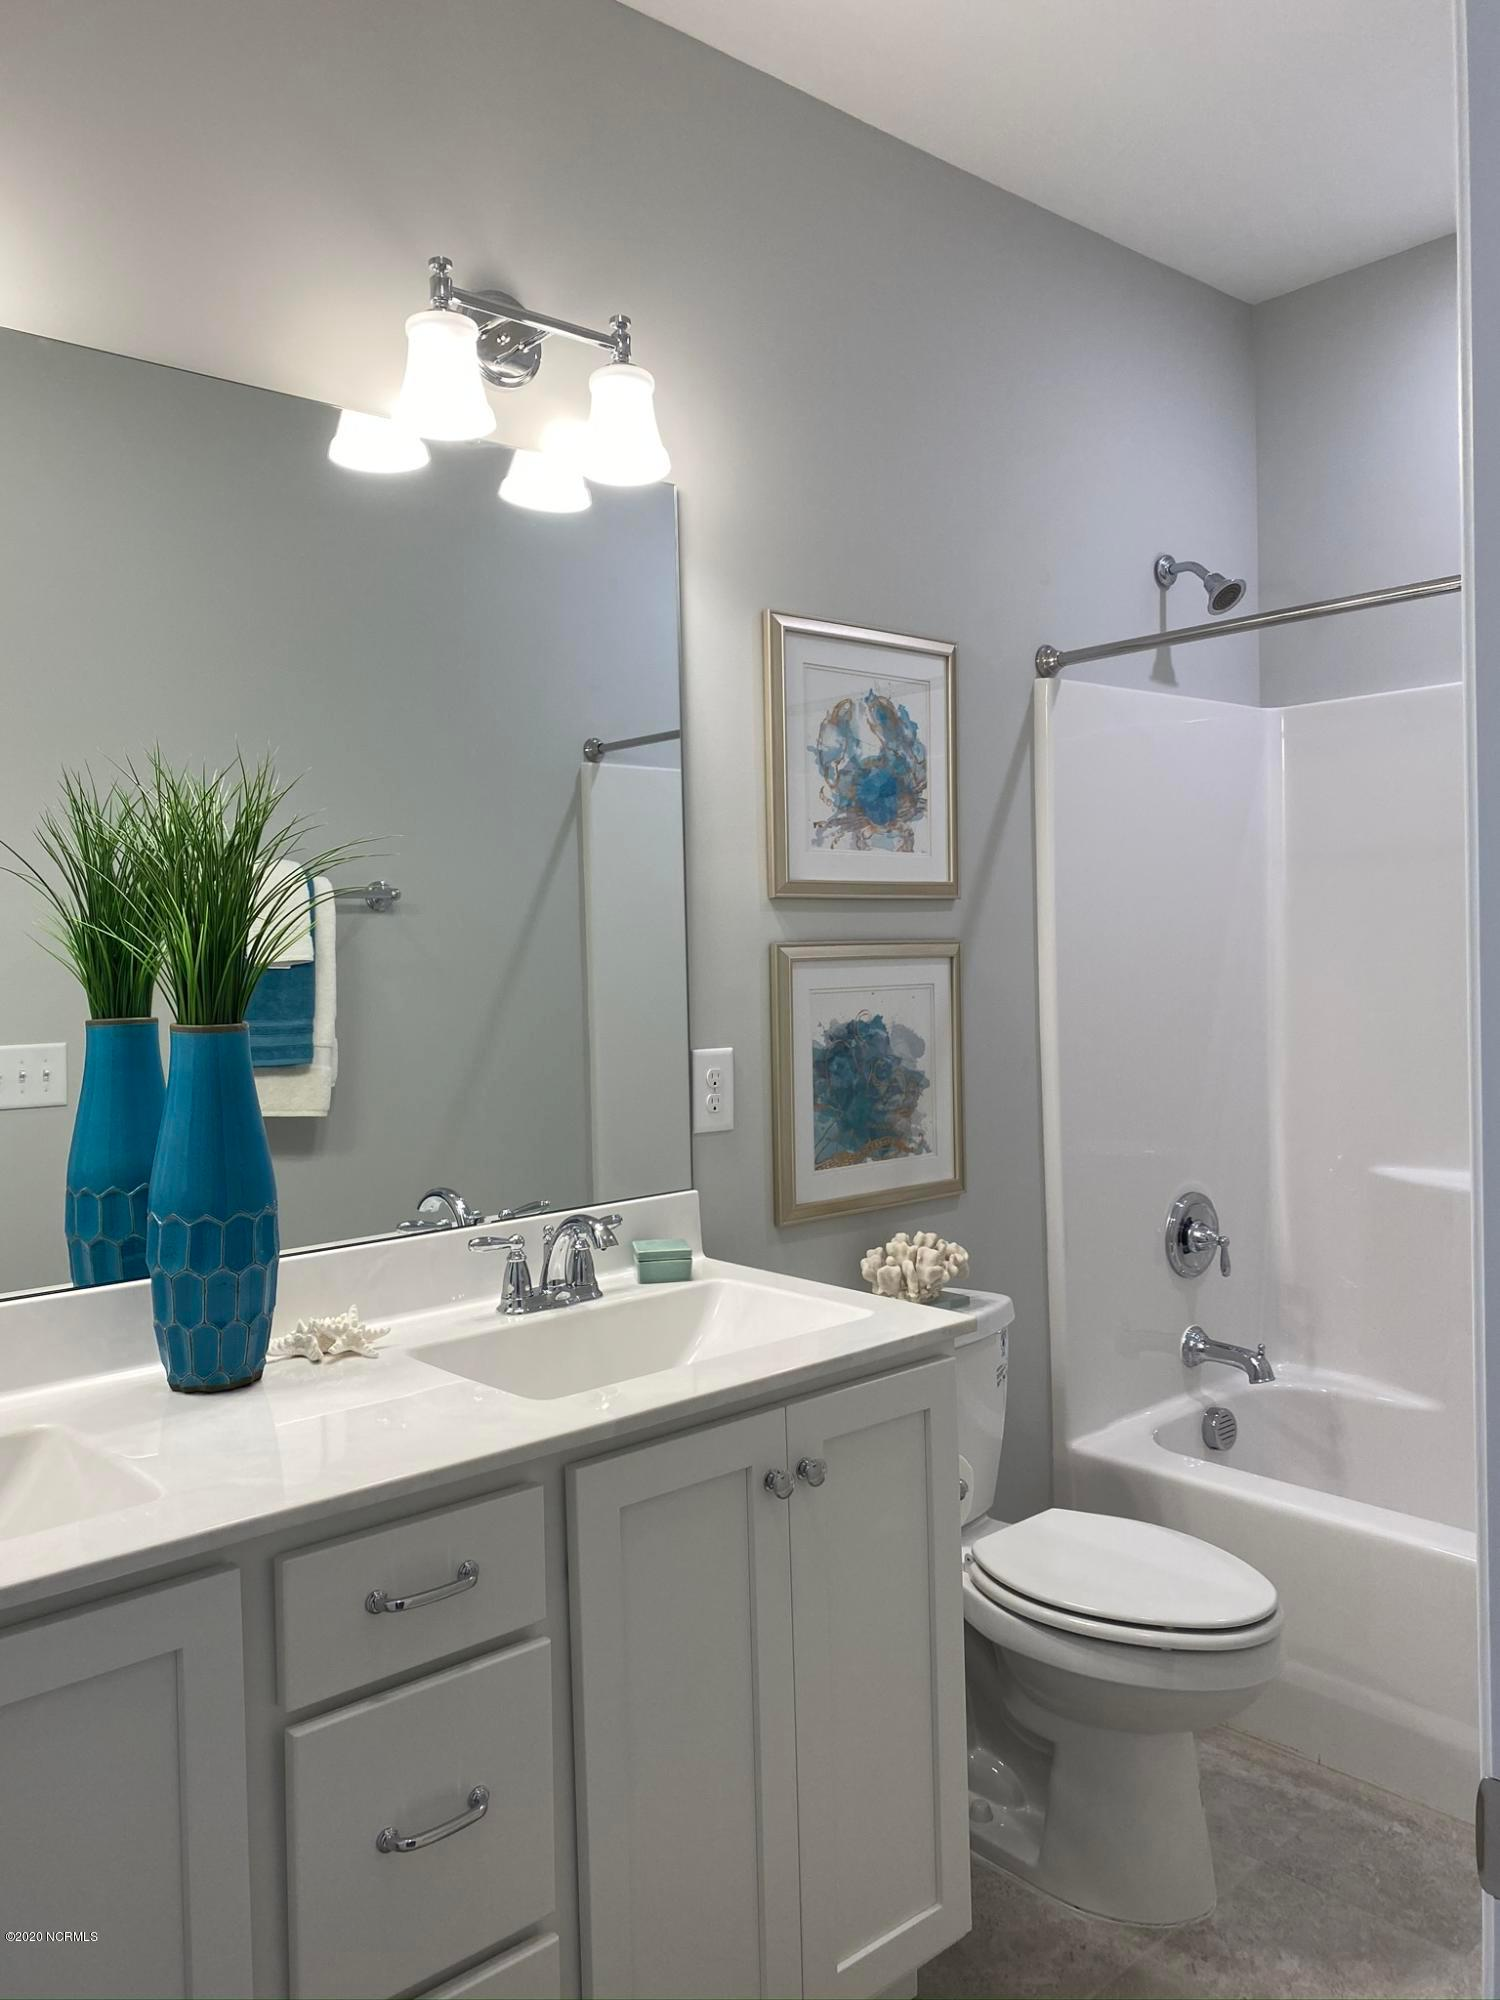 Bathroom featured in the 31 Shooting Star By RobuckHomes in Jacksonville, NC